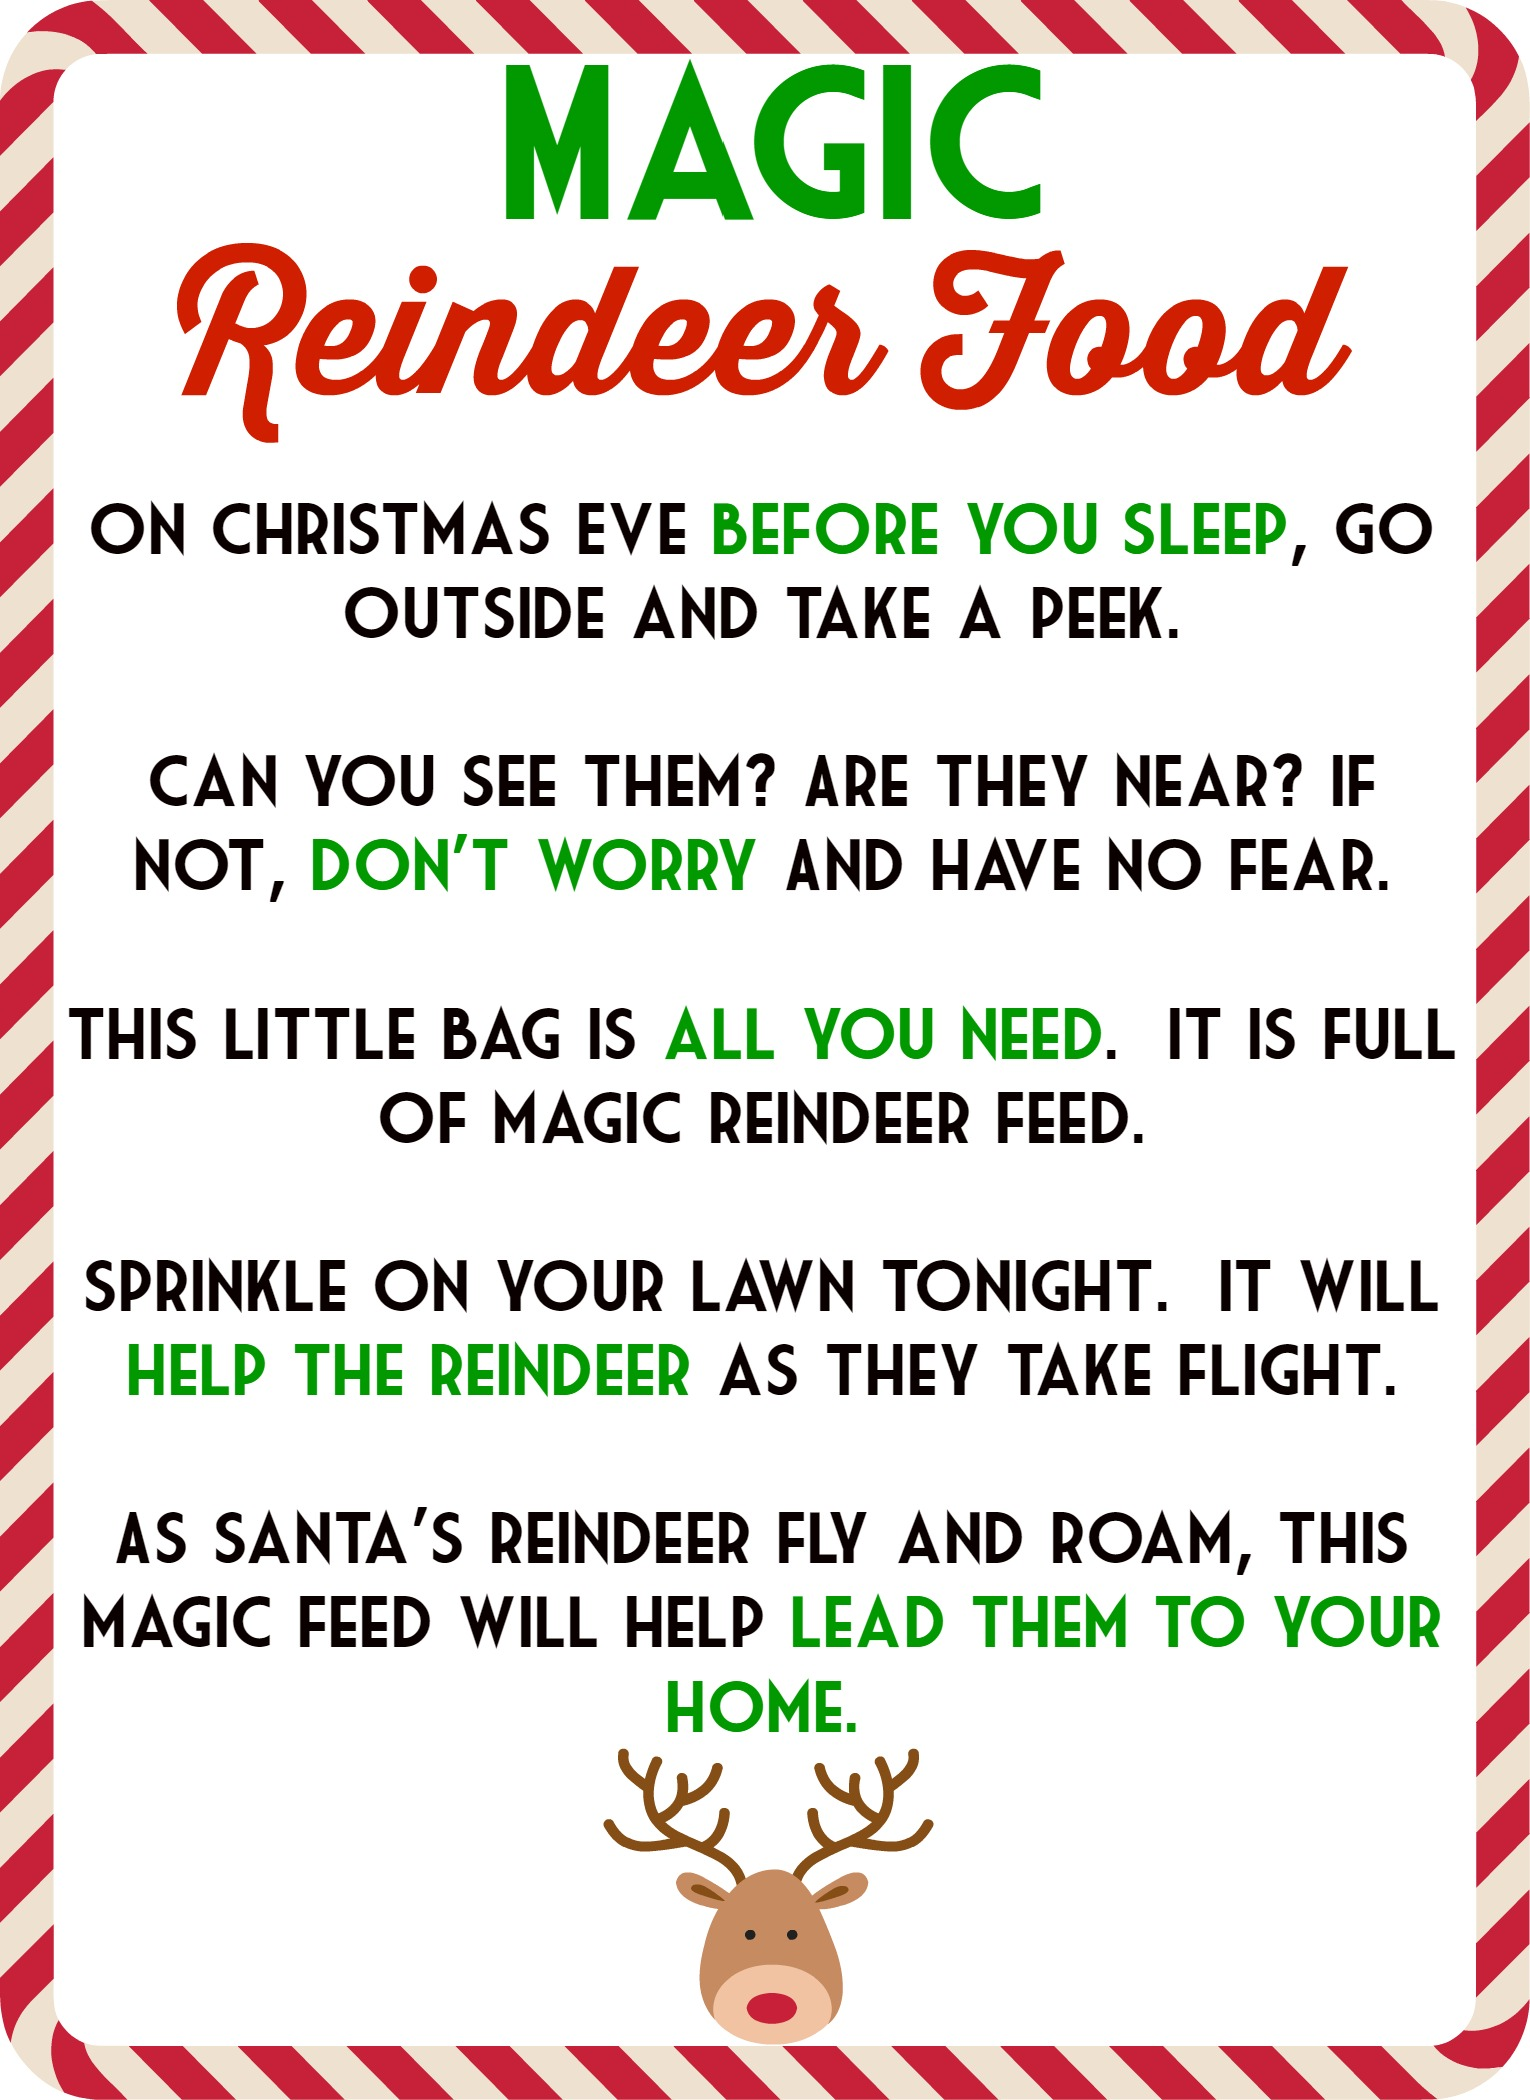 photo about Printable Reindeer Food Tags identified as Magic Reindeer Foods Poem Free of charge Obtain